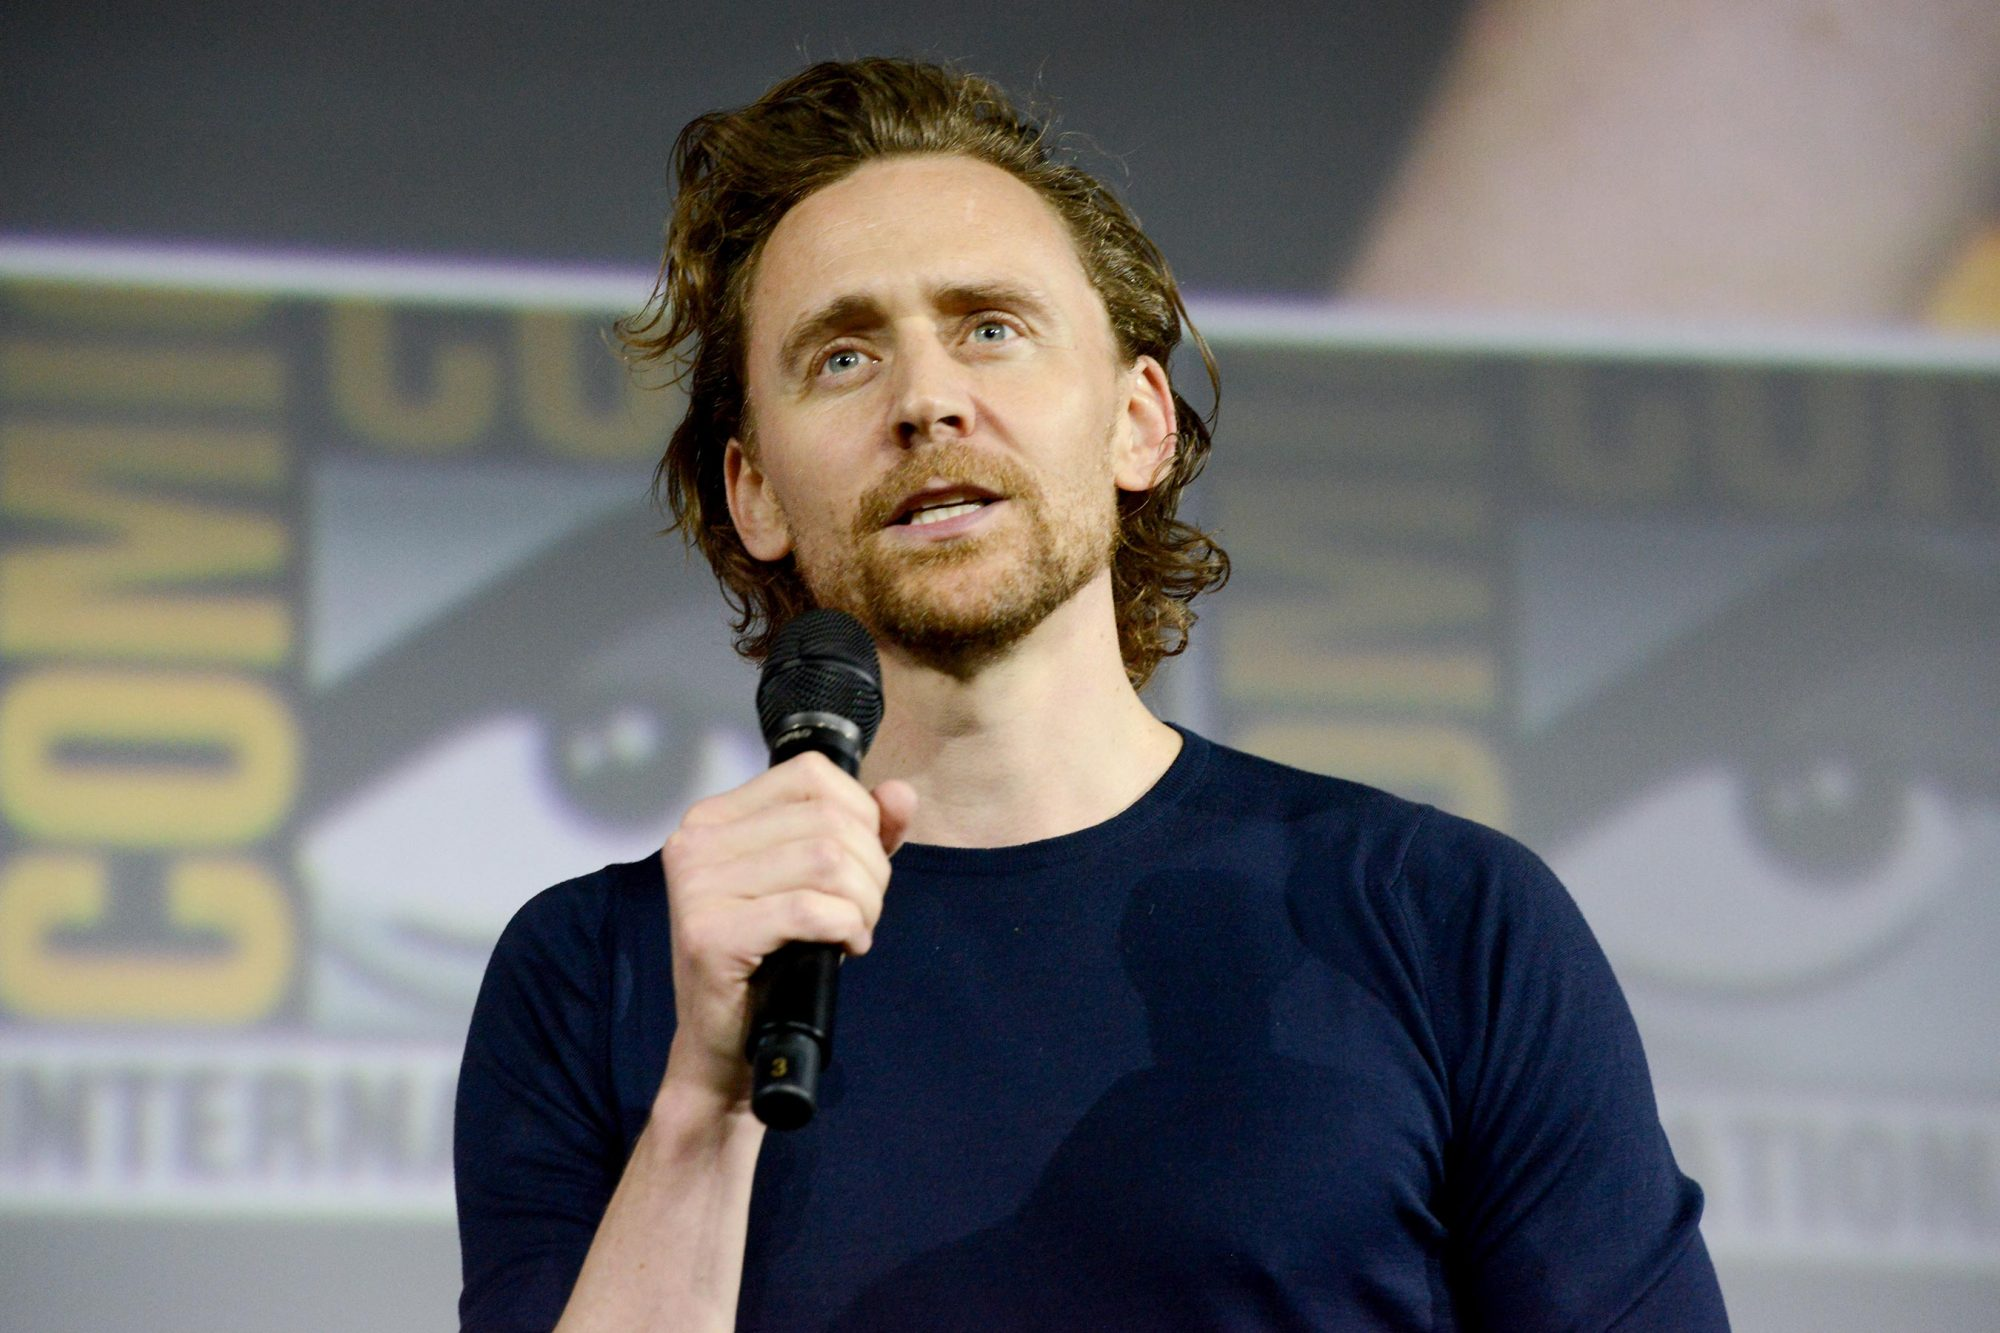 SAN DIEGO, CALIFORNIA - JULY 20: Tom Hiddleston speaks at the Marvel Studios Panel during 2019 Comic-Con International at San Diego Convention Center on July 20, 2019 in San Diego, California. (Photo by Albert L. Ortega/Getty Images)